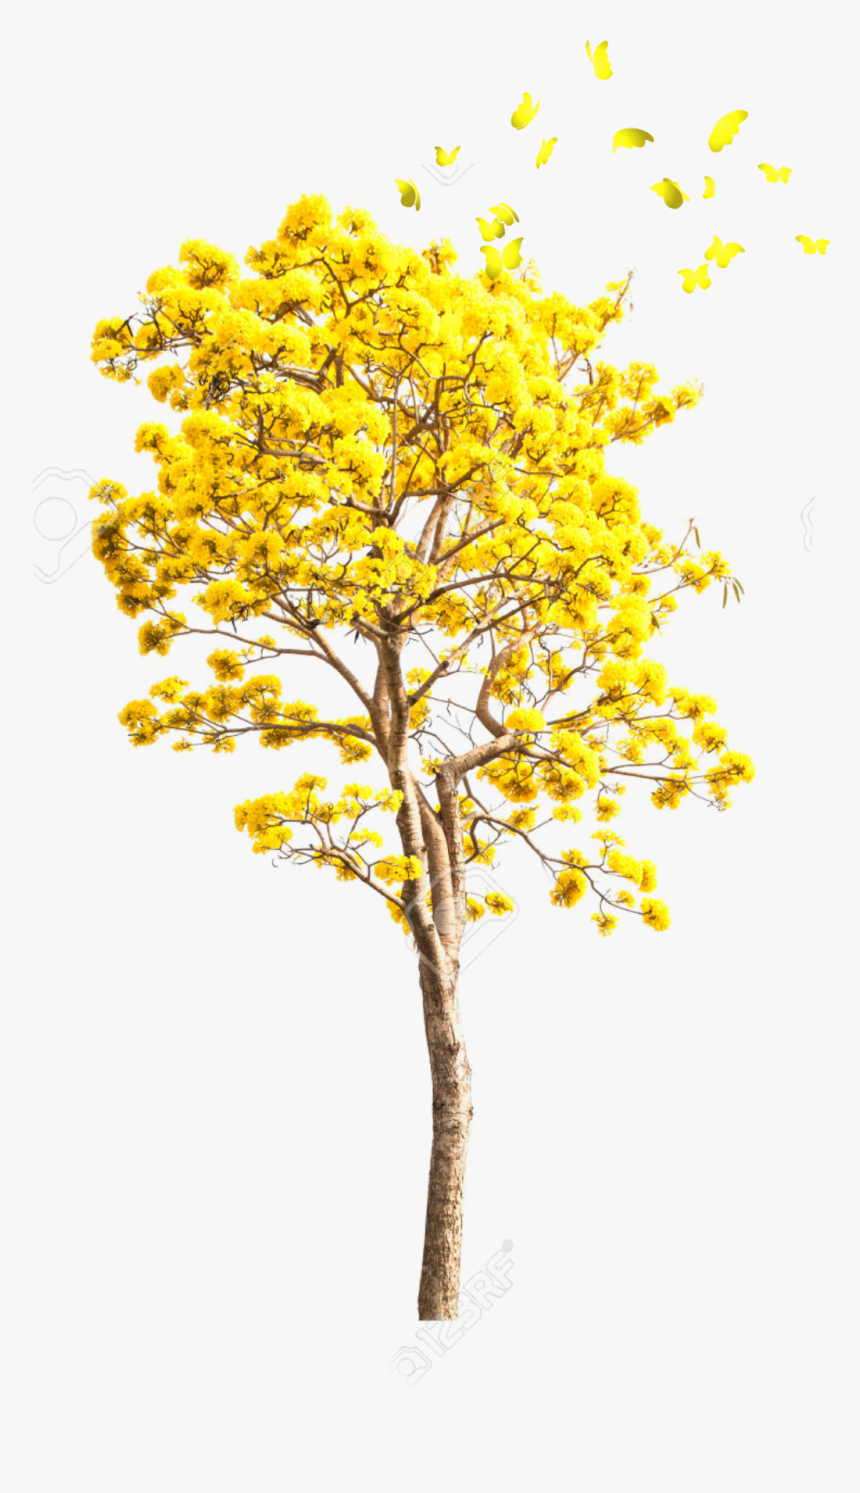 Transparent Yellow Tree Png - Yellow Autumn Tree Png, Png Download, Free Download